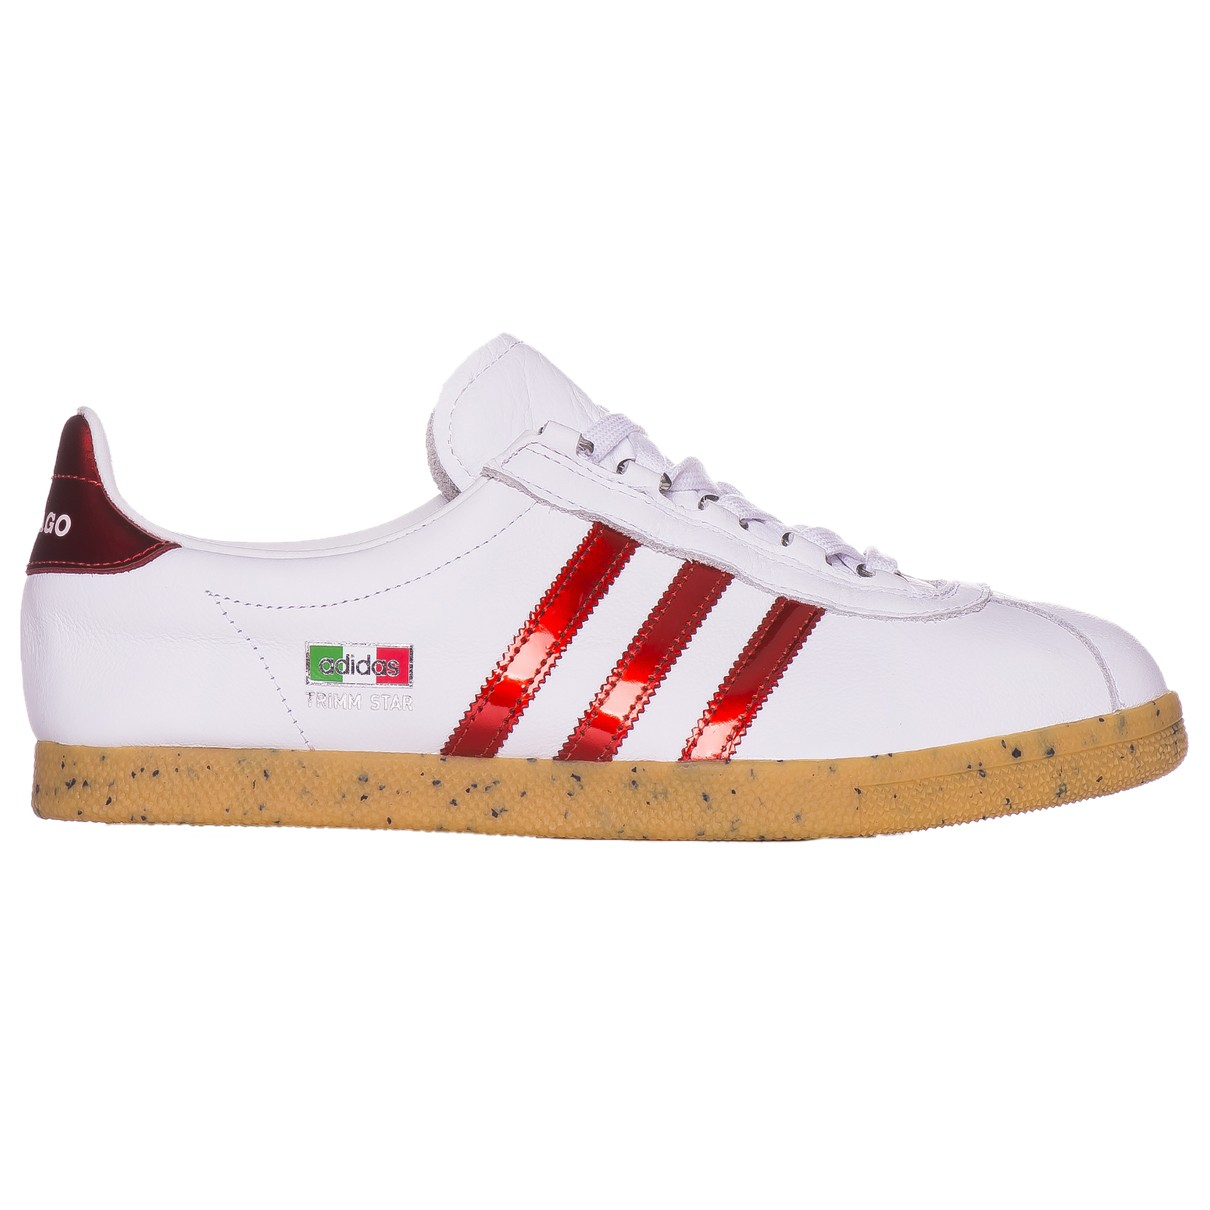 Adidas N White Leather Trainers for Men 46.5 EU